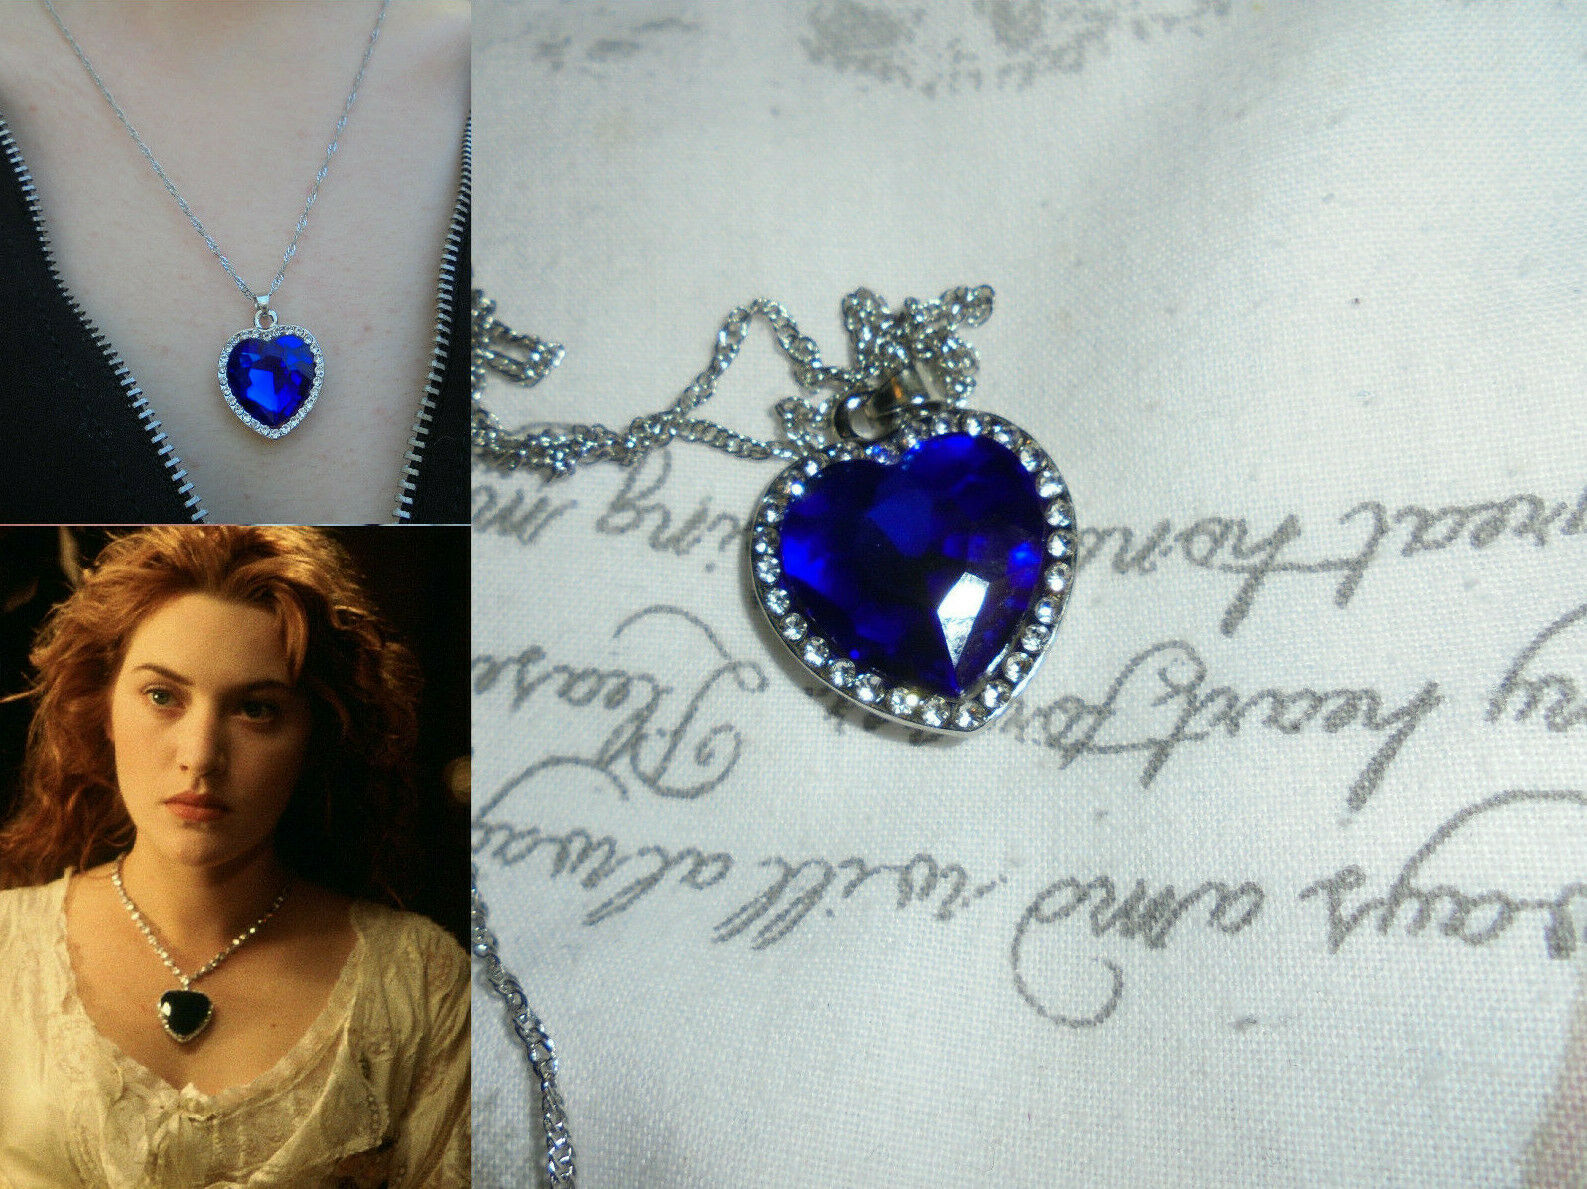 Jewellery - Titanic The Heart of Ocean Necklace Gift Jewellery Blue Diamond Heart